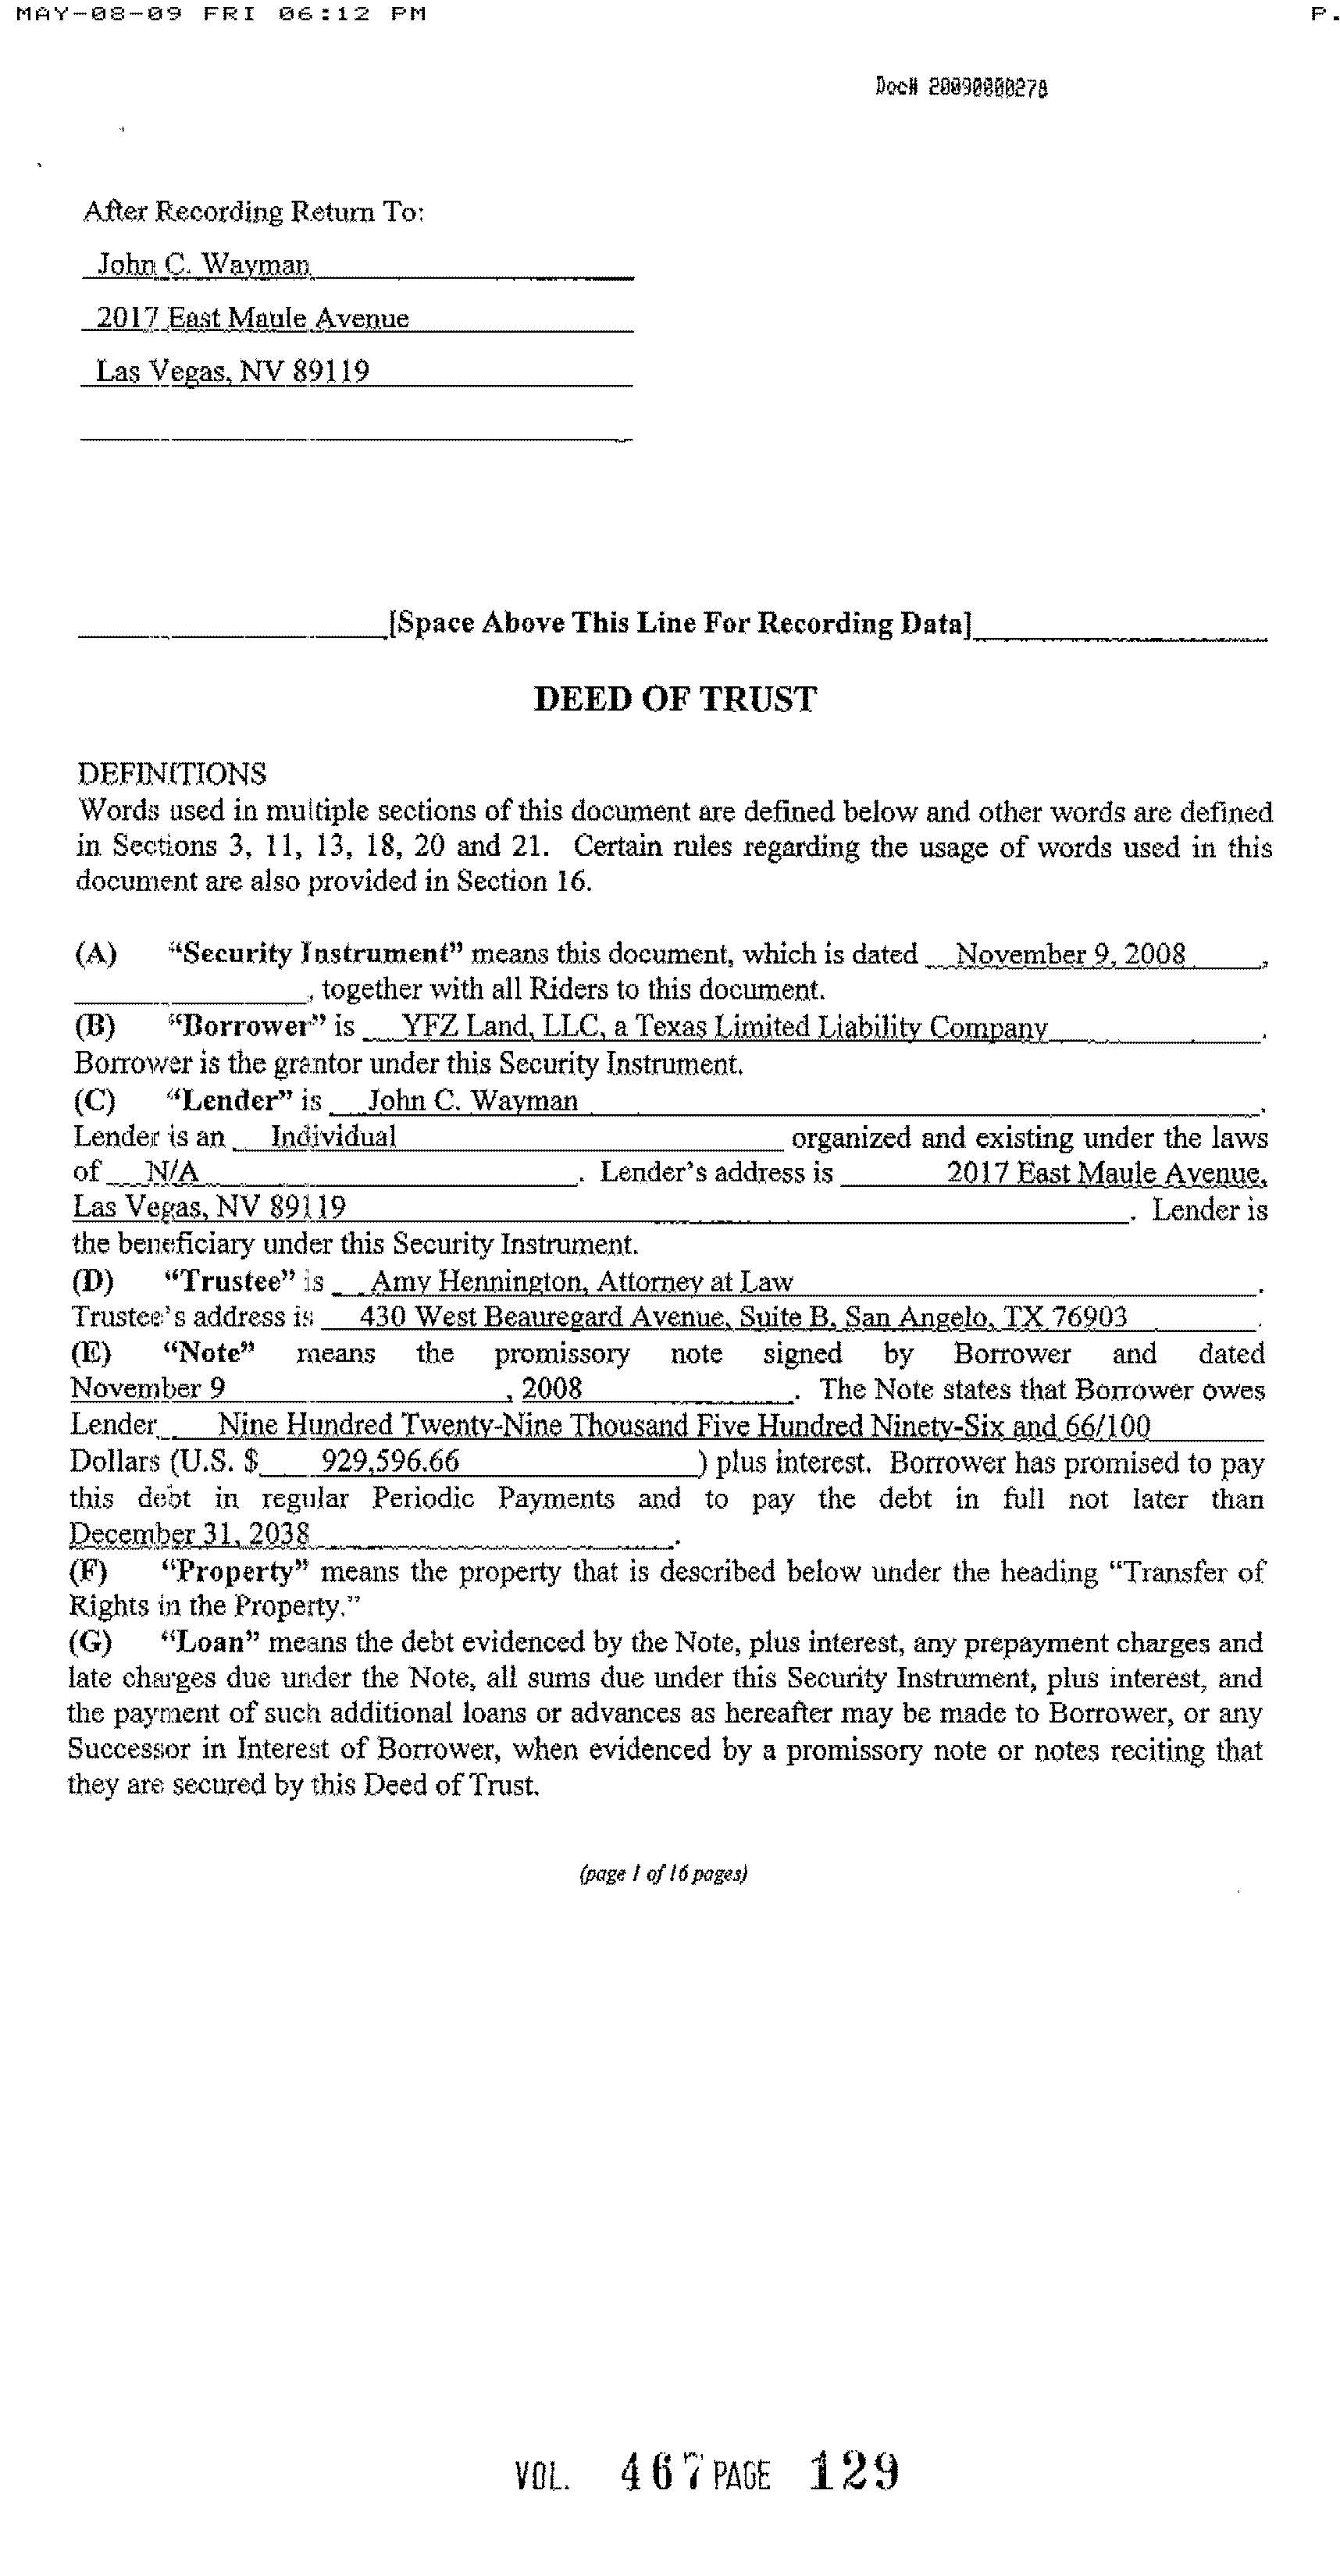 yfz ranch deed of trust | flds texas